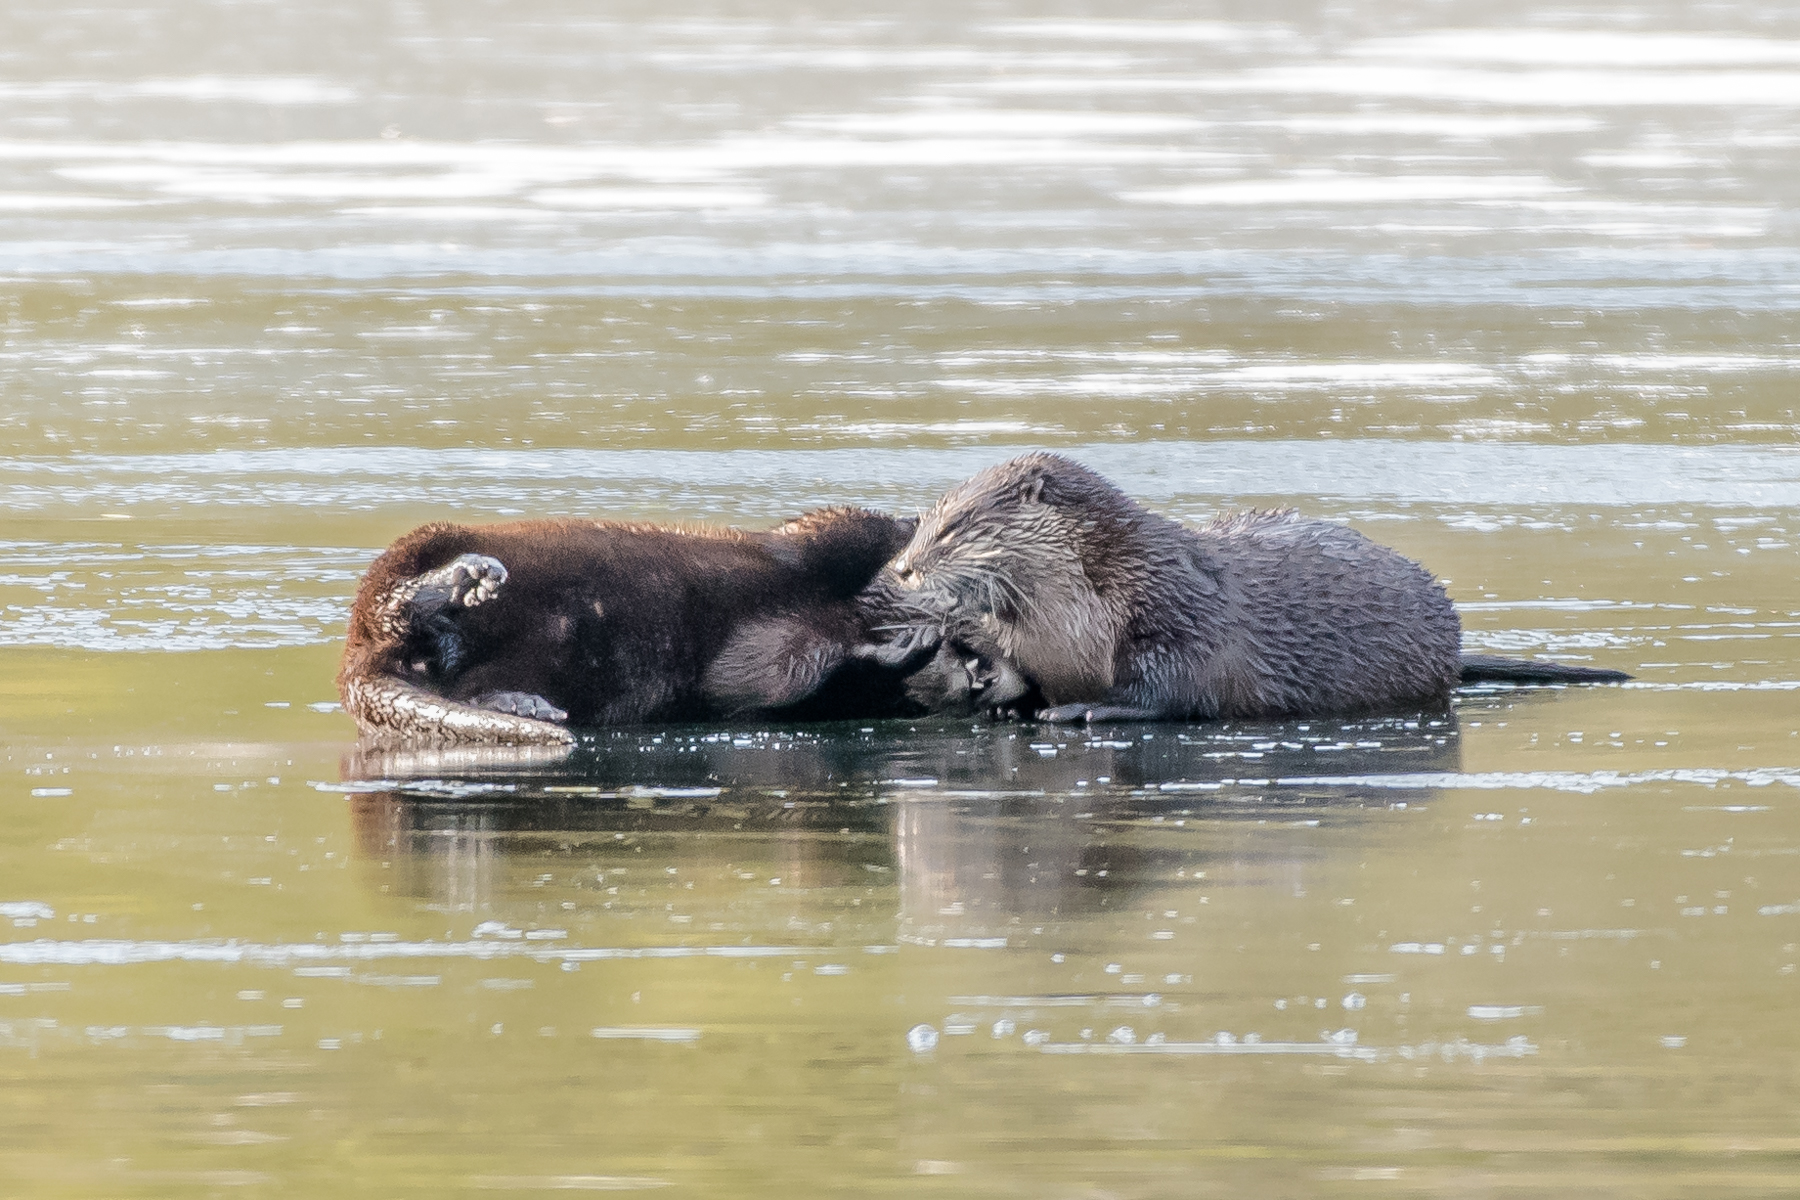 """Nothin like a """"good ole wrasslin match"""" with a family member on the ice during breakfast. Notice the mouth full of teeth just below the otter on the right's neck !"""